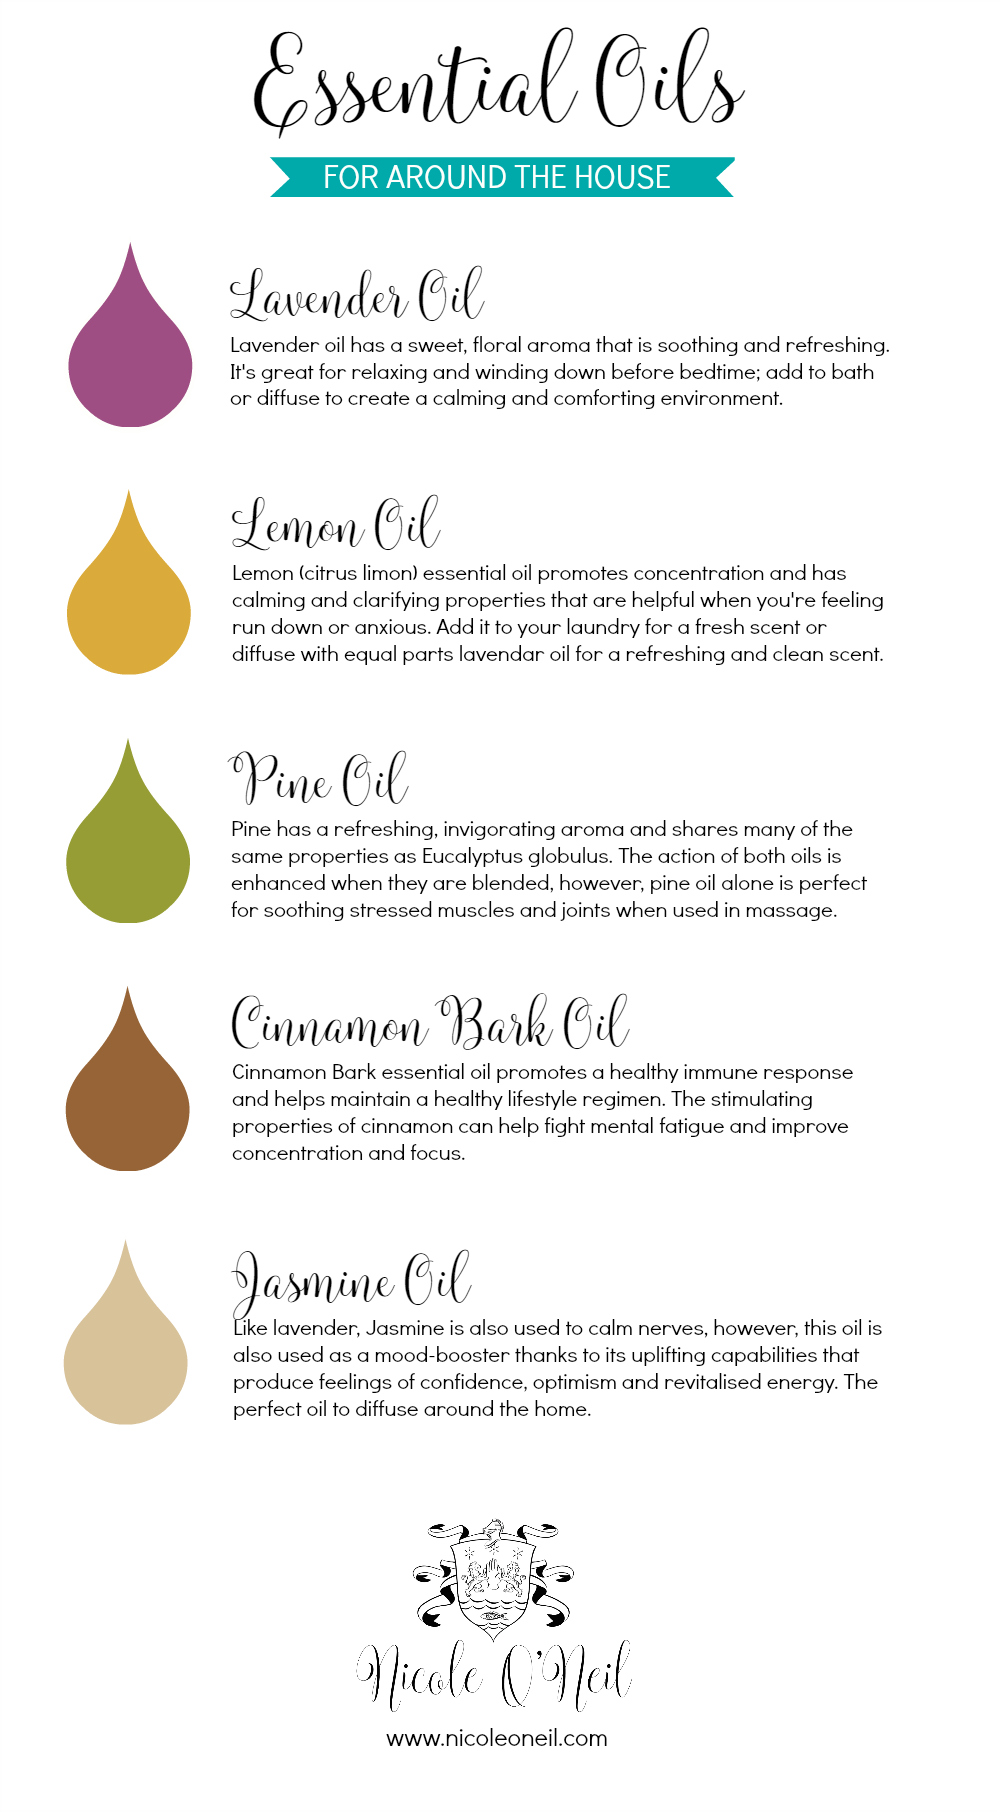 Essential Oils for Around the House - Nicole O'Neil .jpg